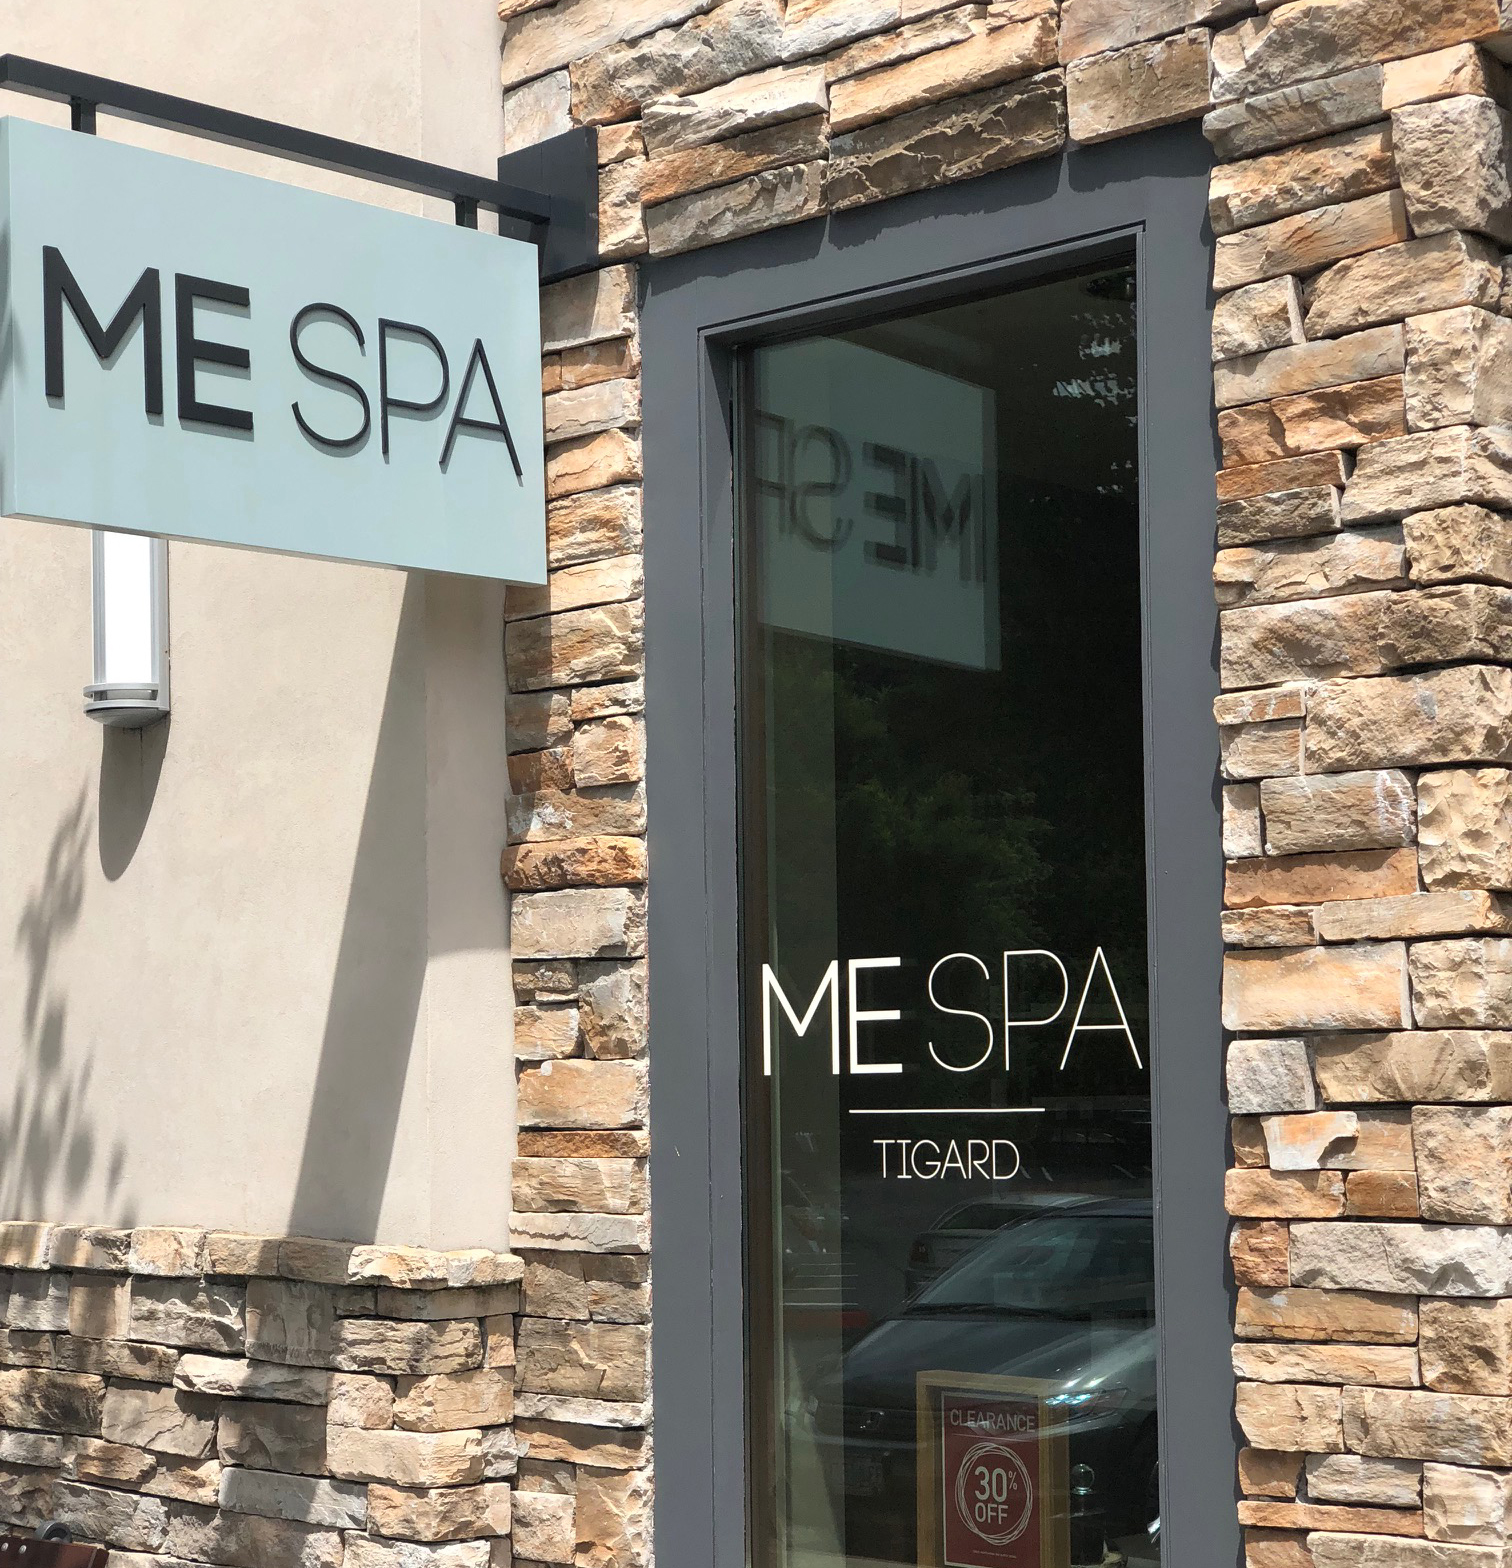 ME SPA offers a soothing place to put life on pause.